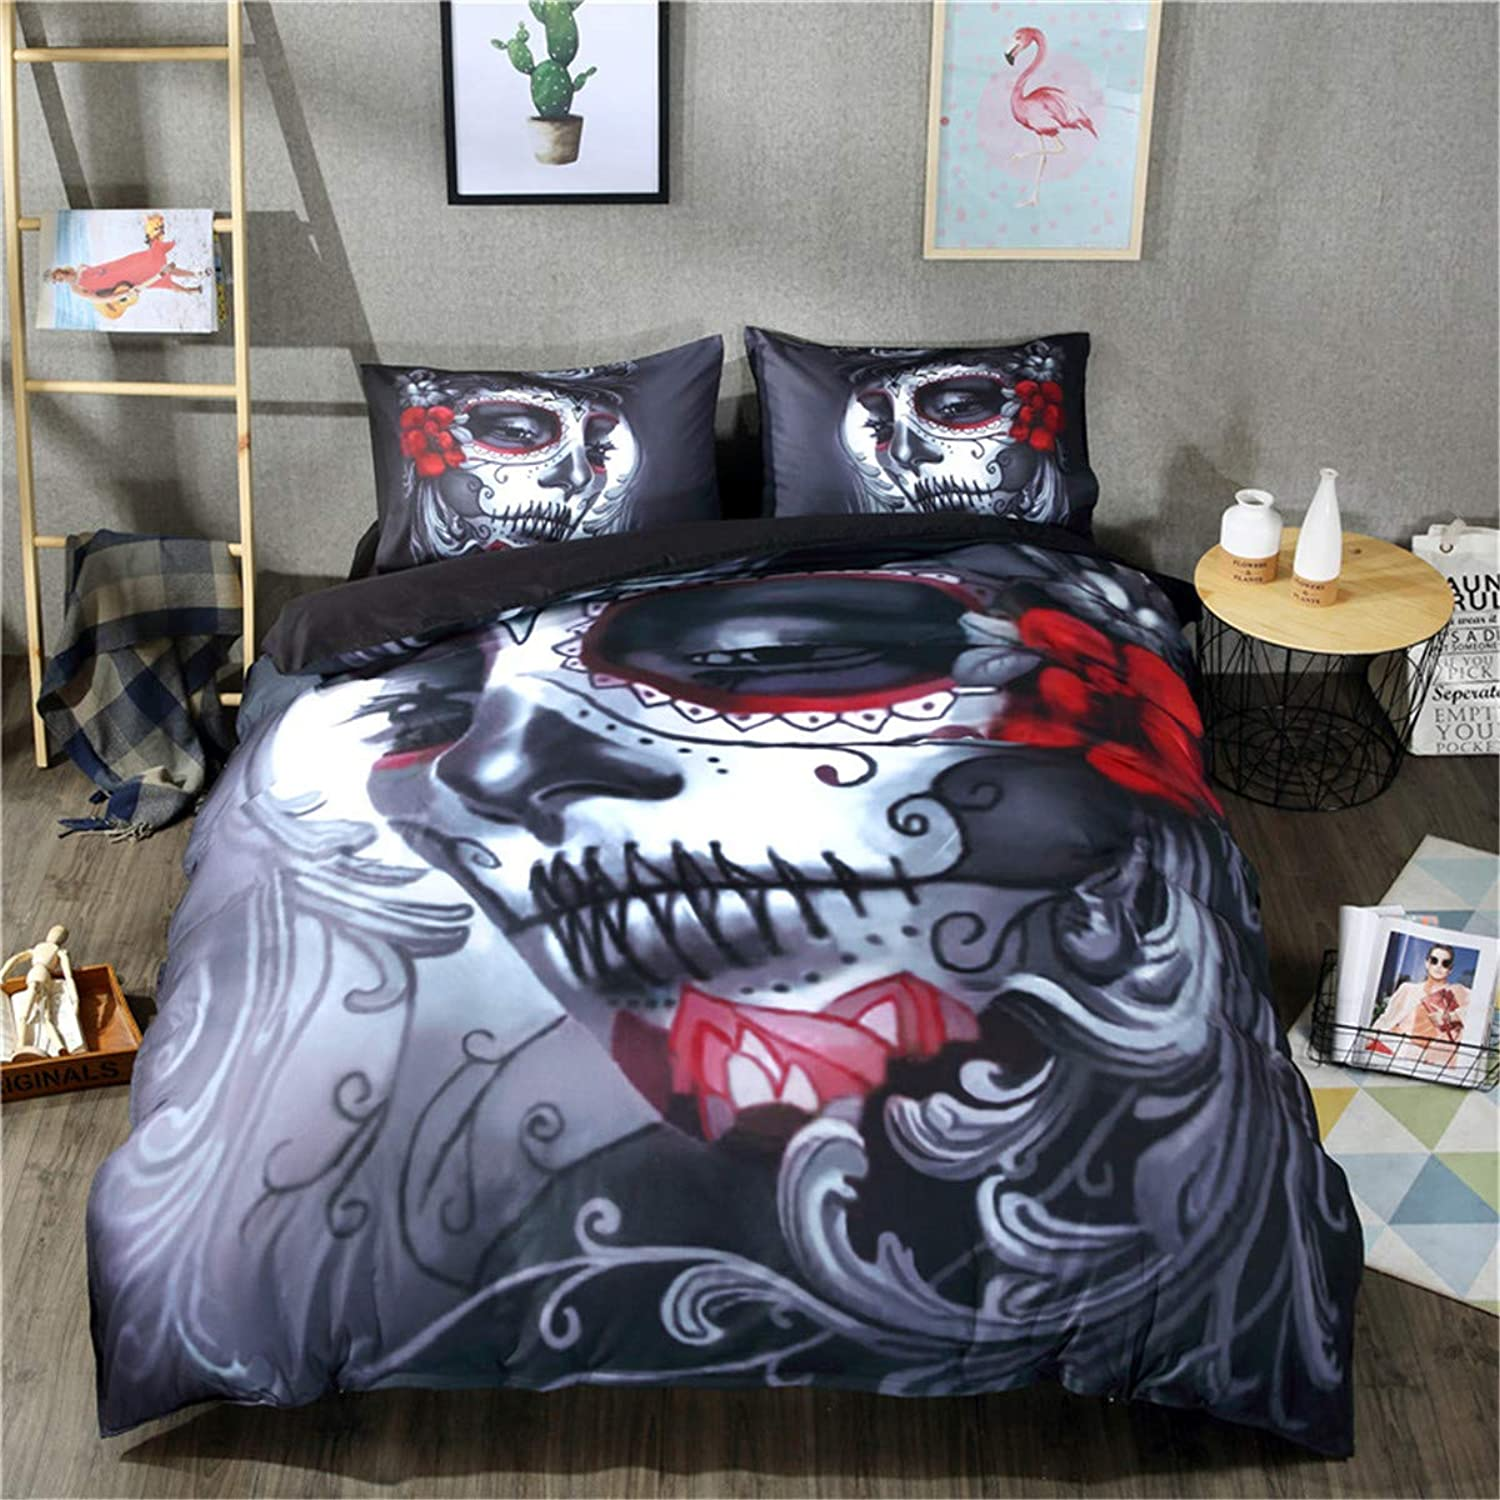 Skull Duvet Cover 3D Printed Flower and Beauty Skull Printed Duvet Cover Halloween Skeleton Bedding Quilt Duvet with 2 Pillowcases and Zipper Queen Size